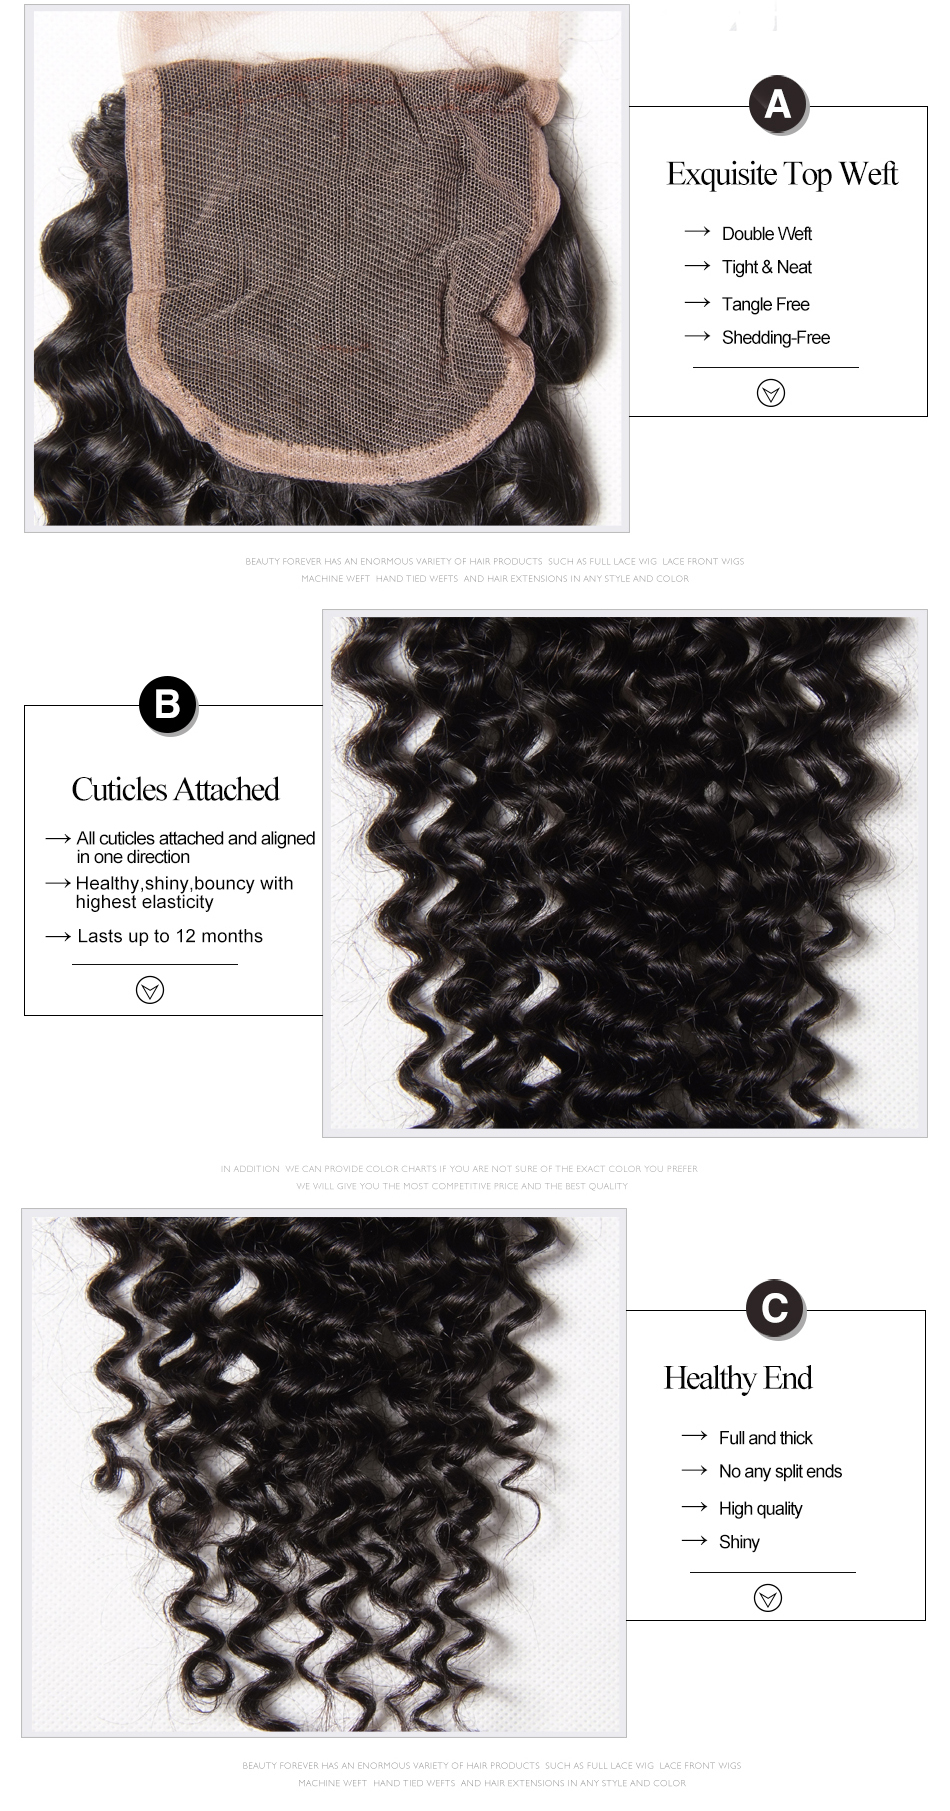 HTB1u9FDd1GSBuNjSspbq6AiipXao Beauty Forever Malaysian Curly Human Hair Bundles With Closure 4*4 Closure Free/Middle/Three Part 100% Remy Hair Extension